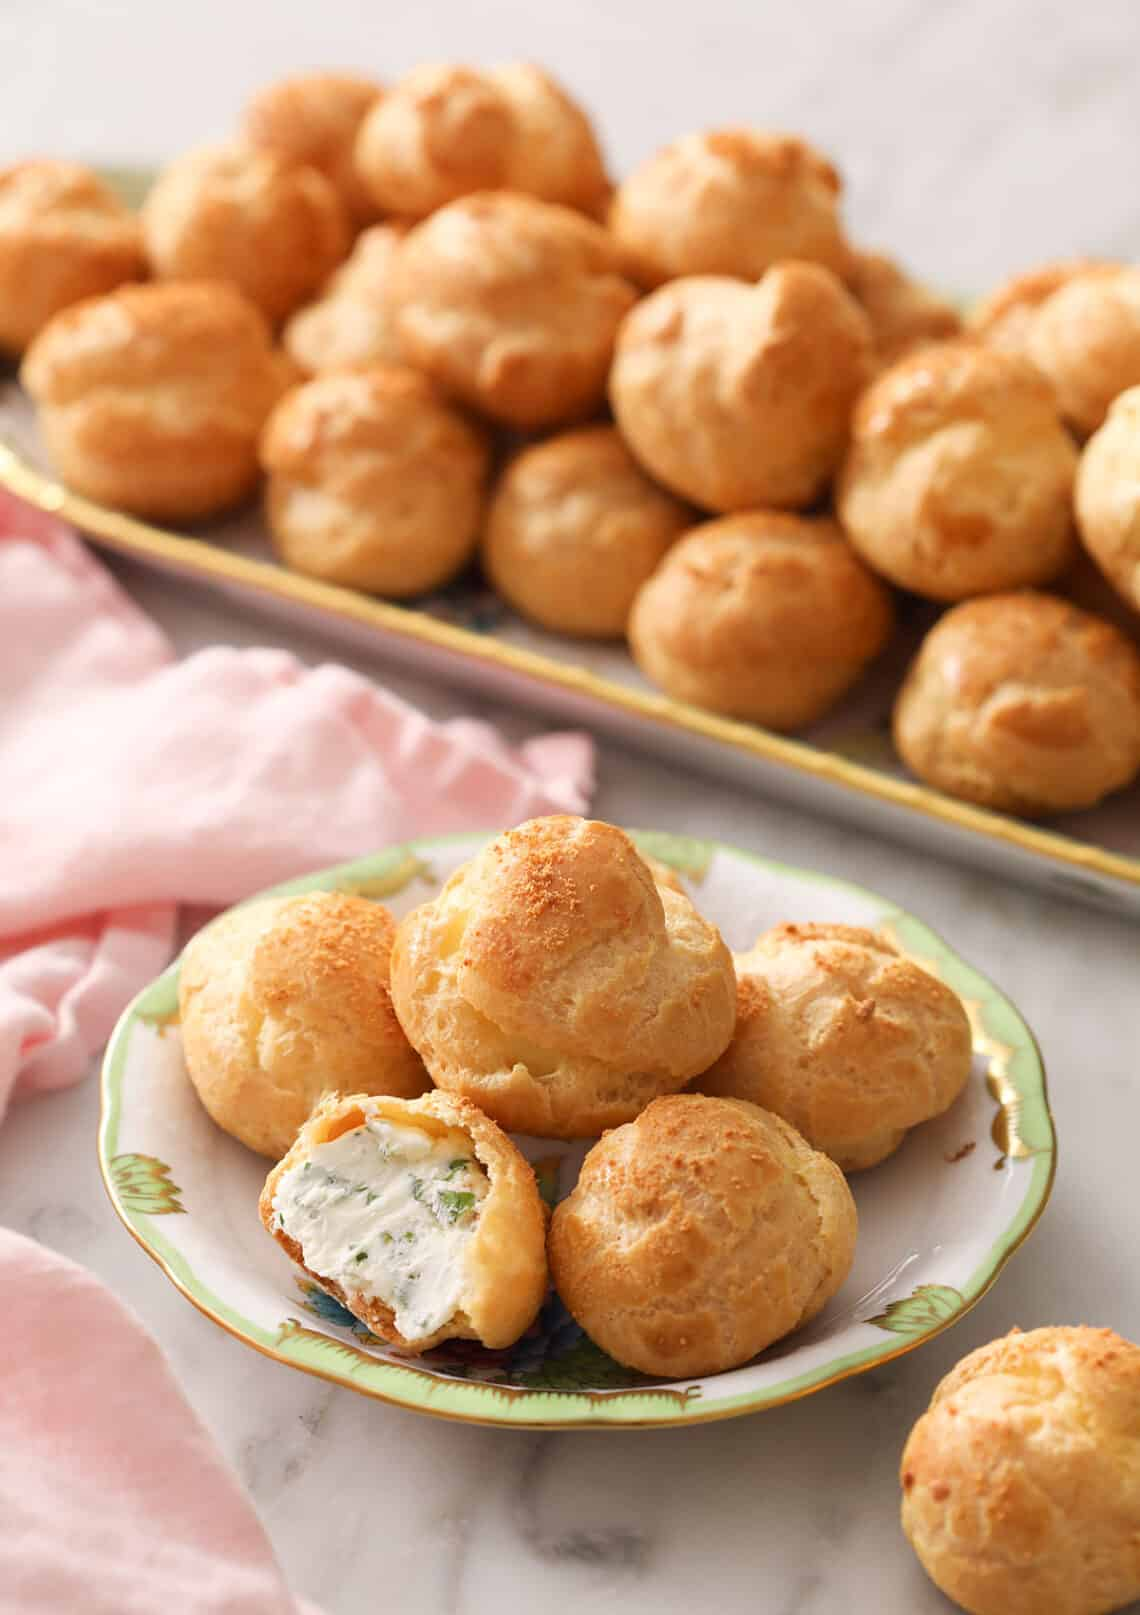 Cheese puffs on a small plate in front of a serving tray full of them